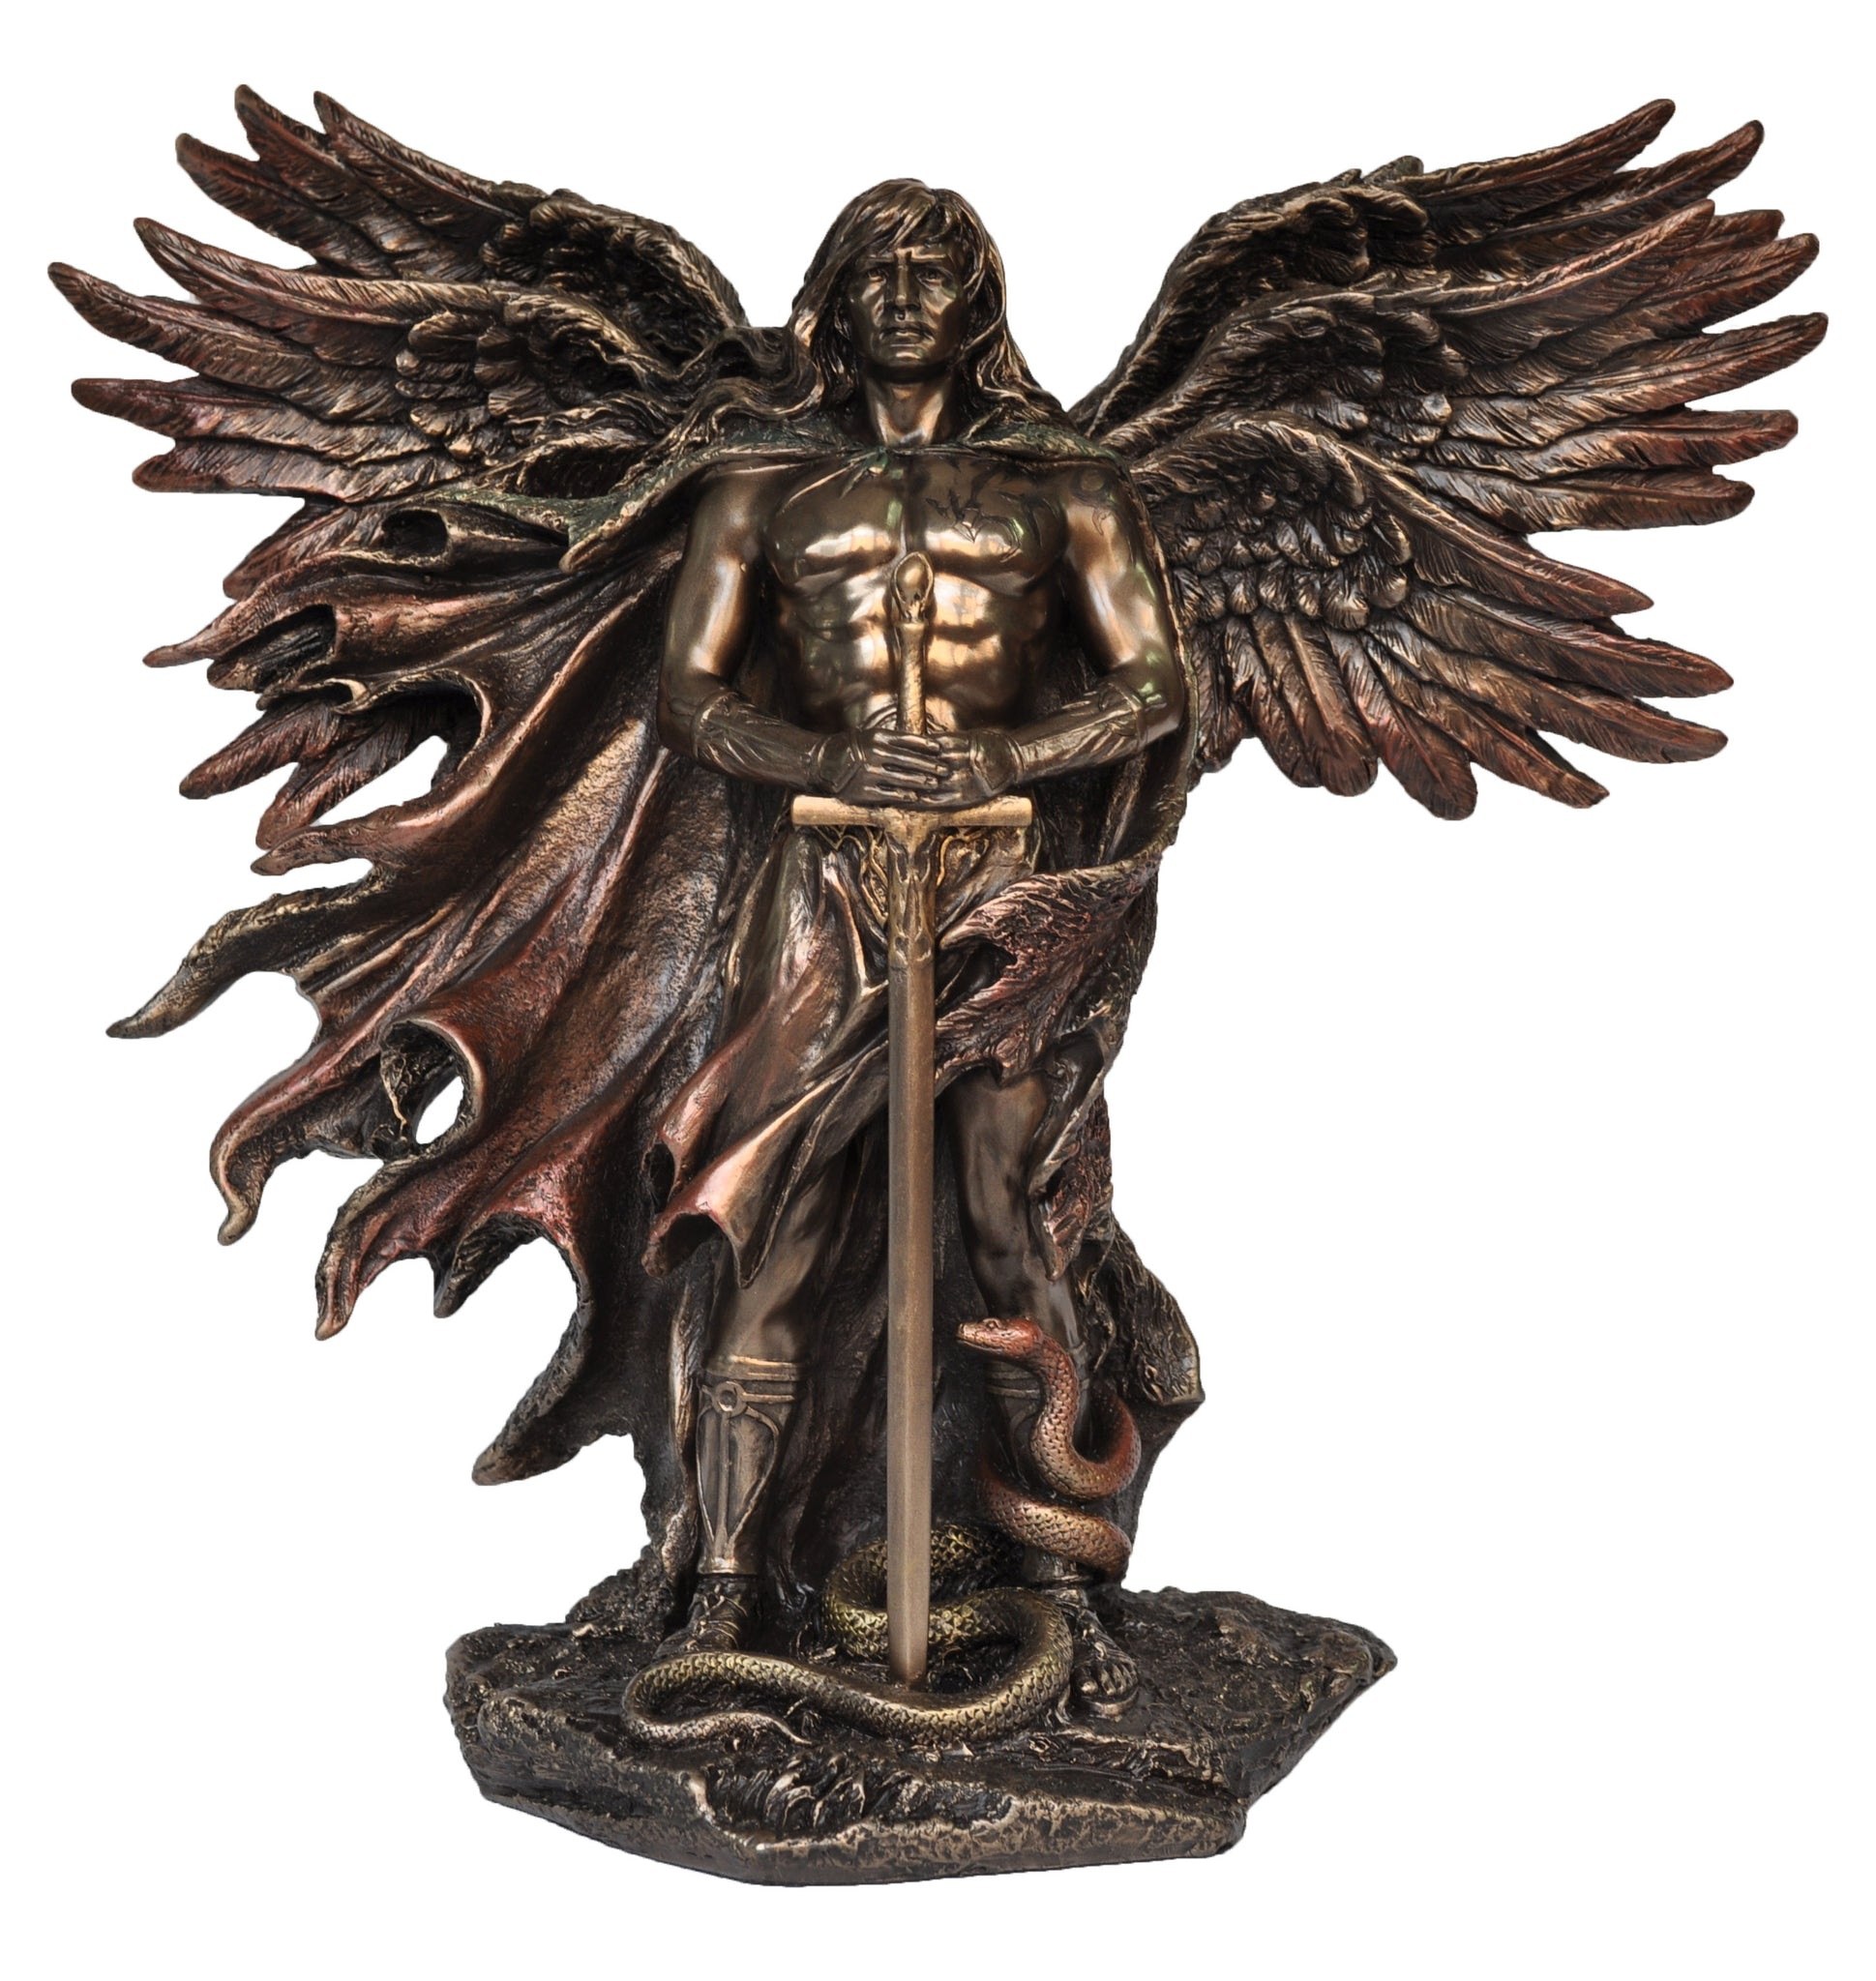 Veronese Six Winged Guardian Statue Figurine